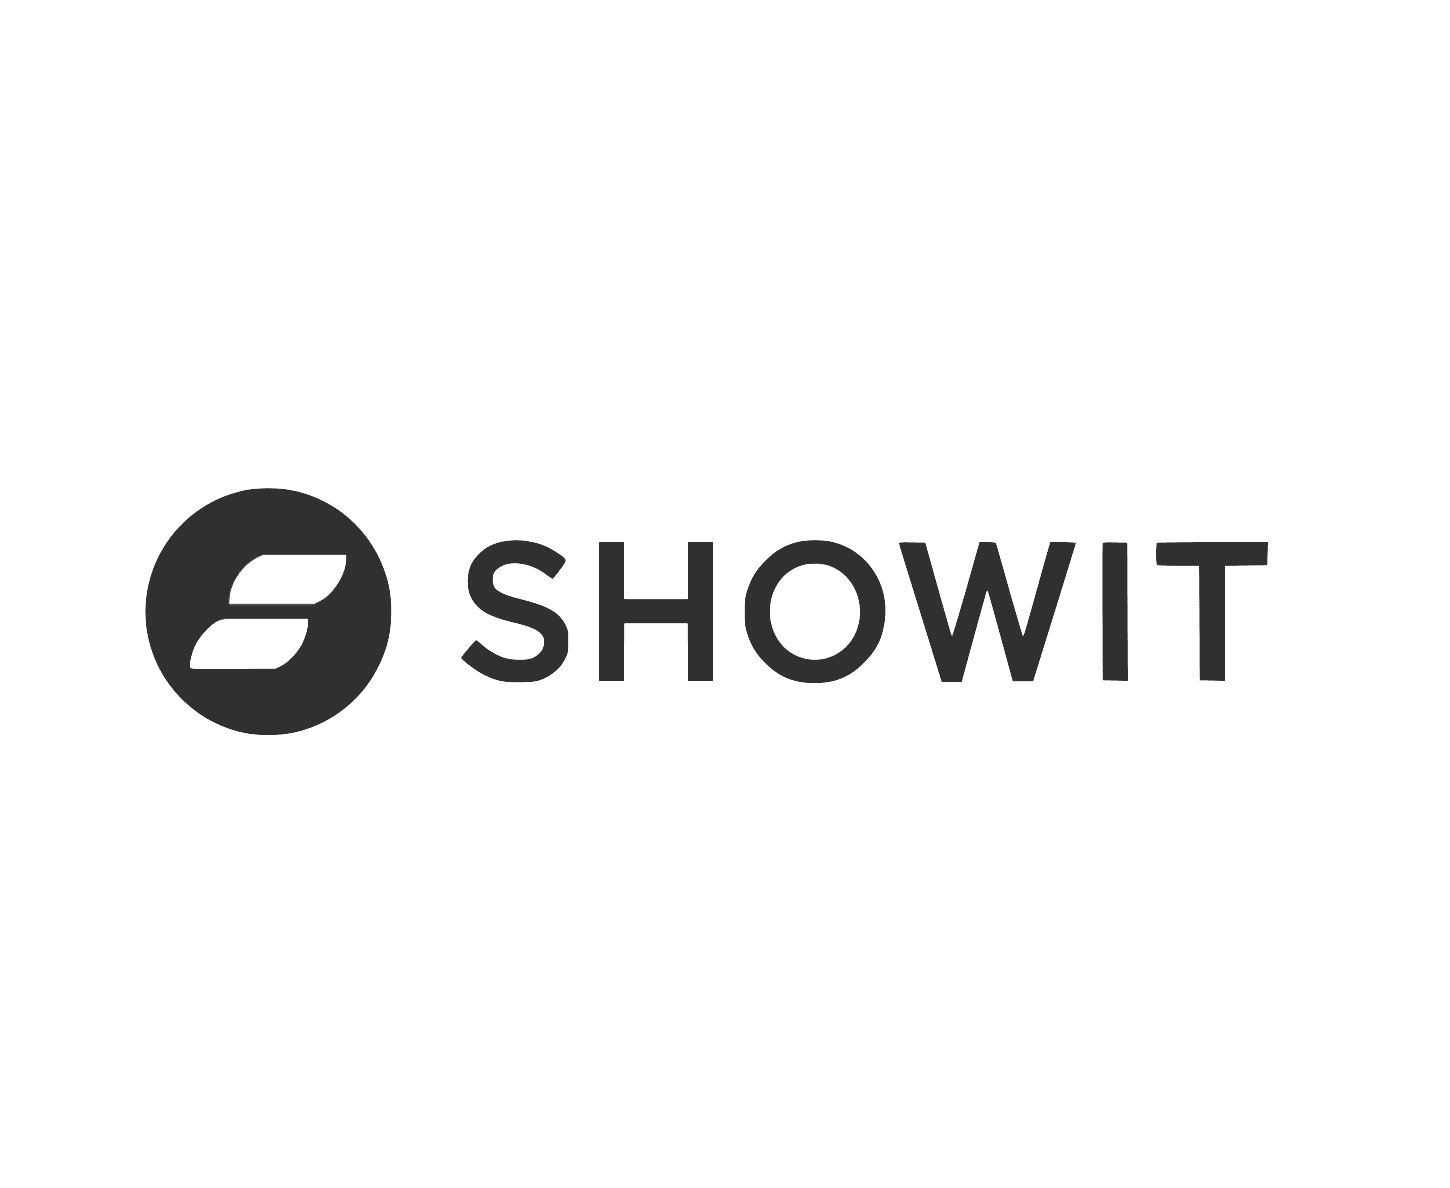 A link to the website tool we use: Showit